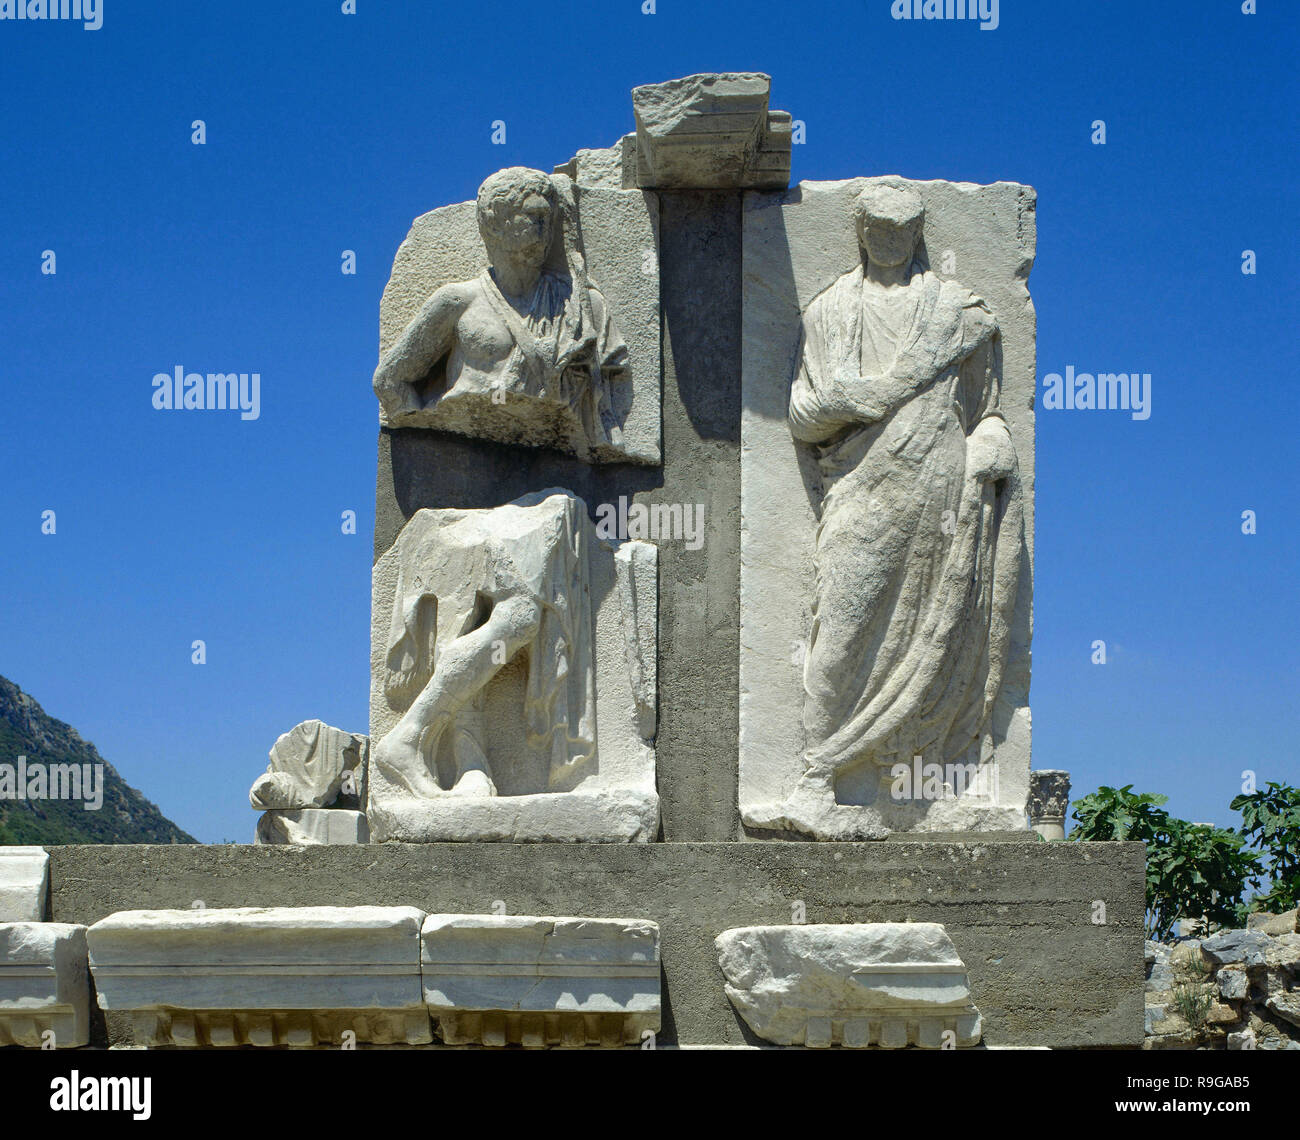 Turkey. Ephesus. The Memmius Monument. Erected in 1st century AD (Reign of Augustus) by Memmius, a proviment citizen of the city, son of Caius and grandson of the dictator Sulla of Rome. Anatolia. - Stock Image